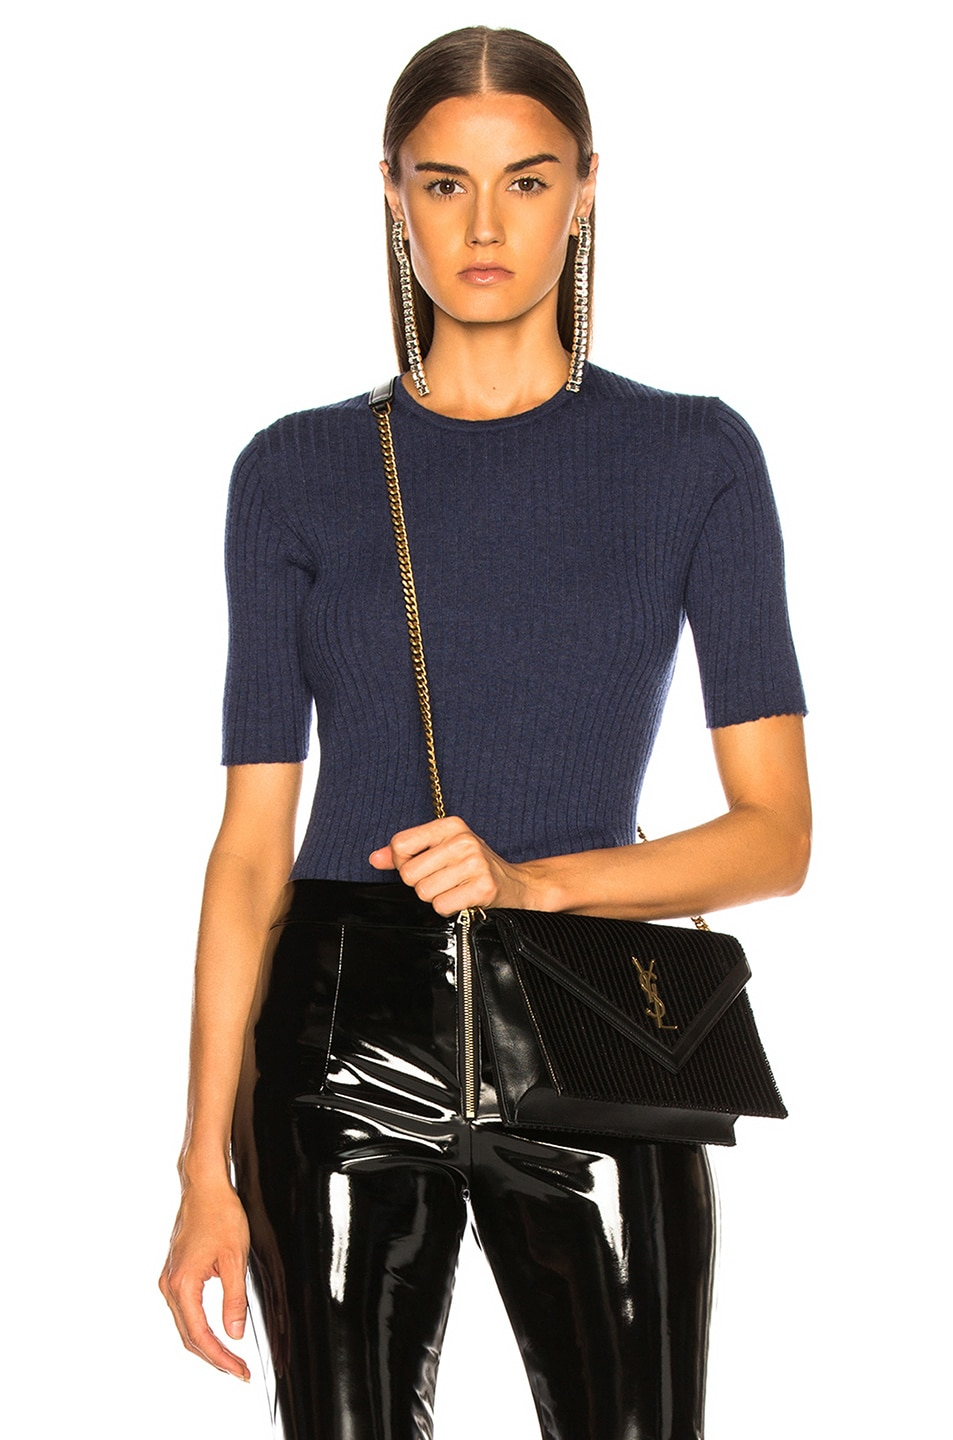 Image 1 Of Victoria Beckham Fine Gauge Cashmere Top In Cornflower Blue Melange